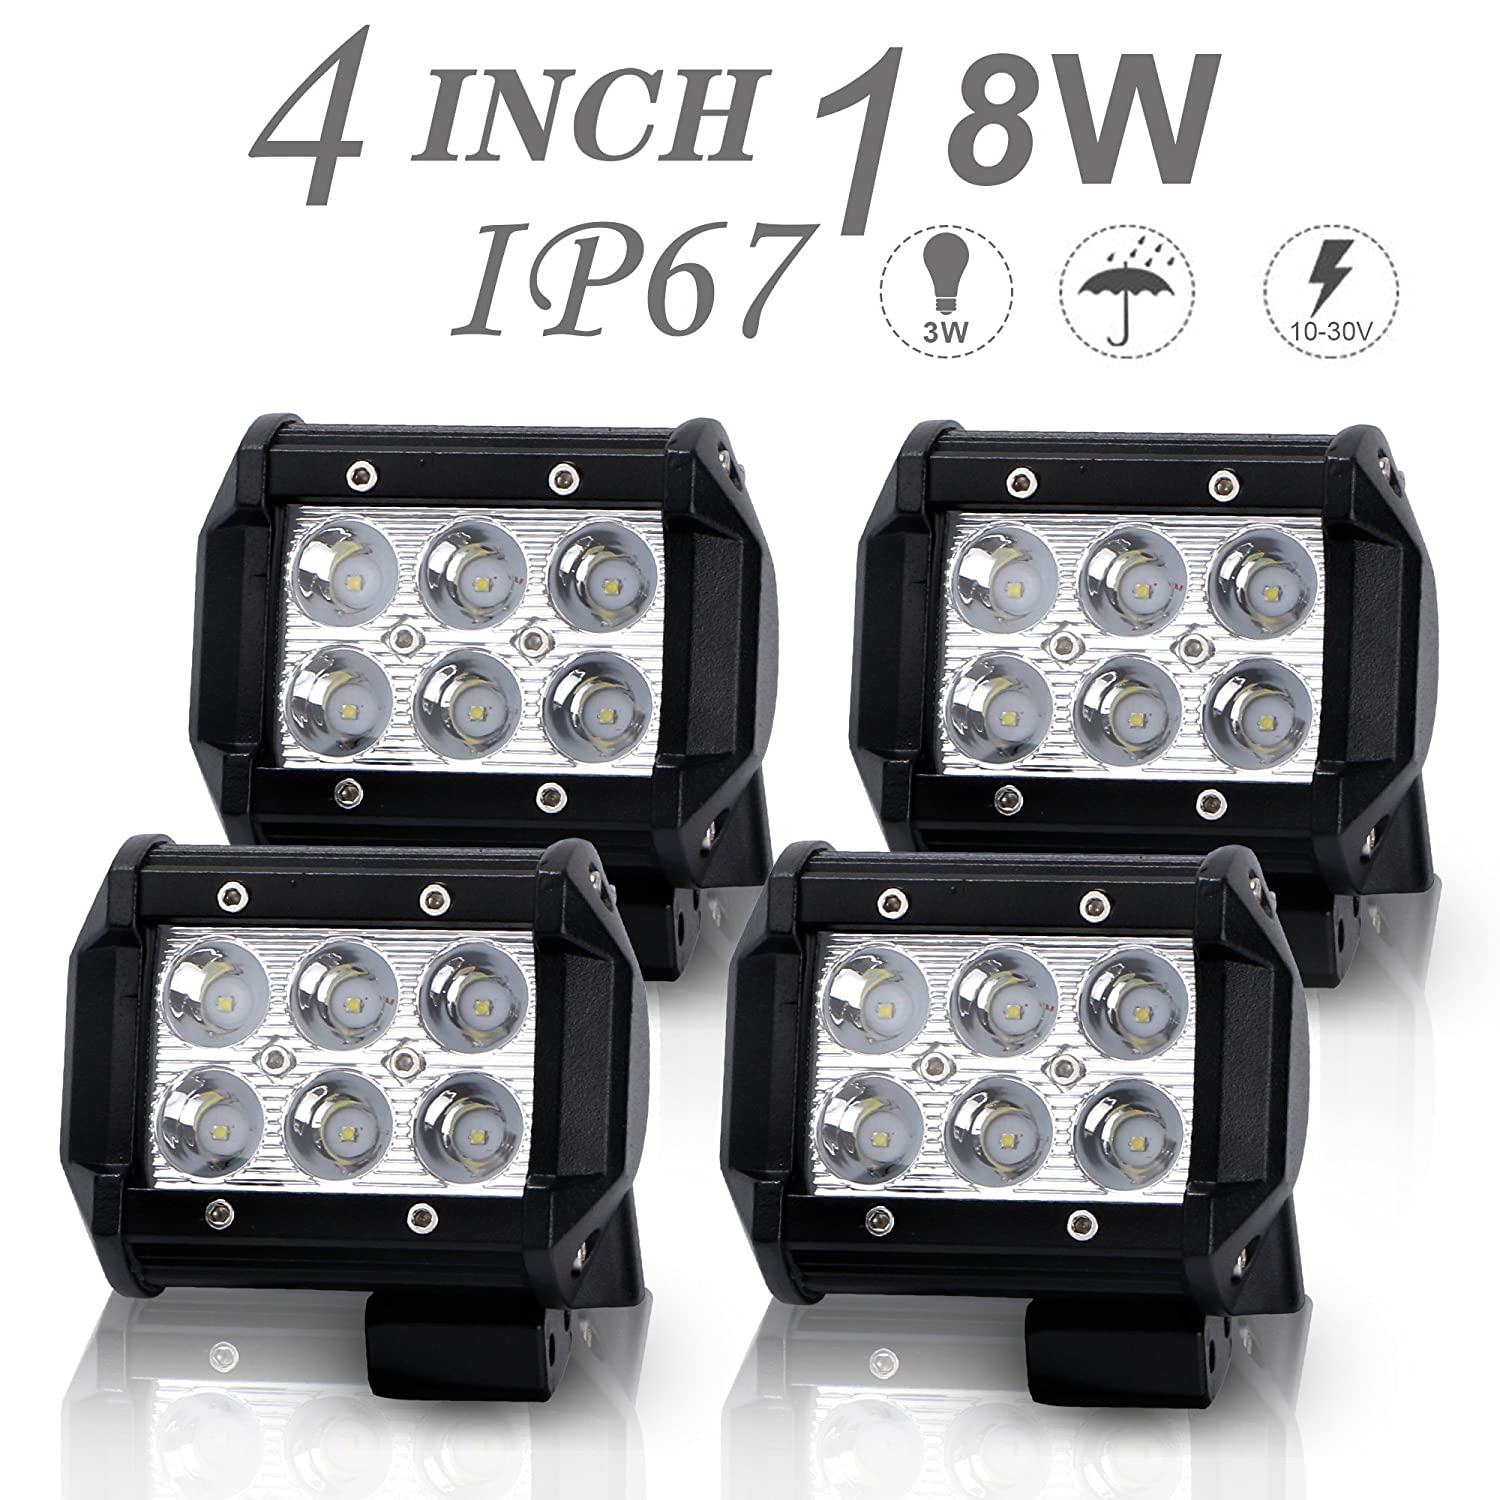 DOT Approved 4Pcs 4Inch 18W Spot LED Light Bar Offroad Pods Lights 4wd LED Driving Lamp Work Light Bulb Fog Lights Backup Reverse Lights for Truck Pickup Jeep SUV ATV UTV Tractor Boat Waterproof IP67 12V/24V Uni Filter